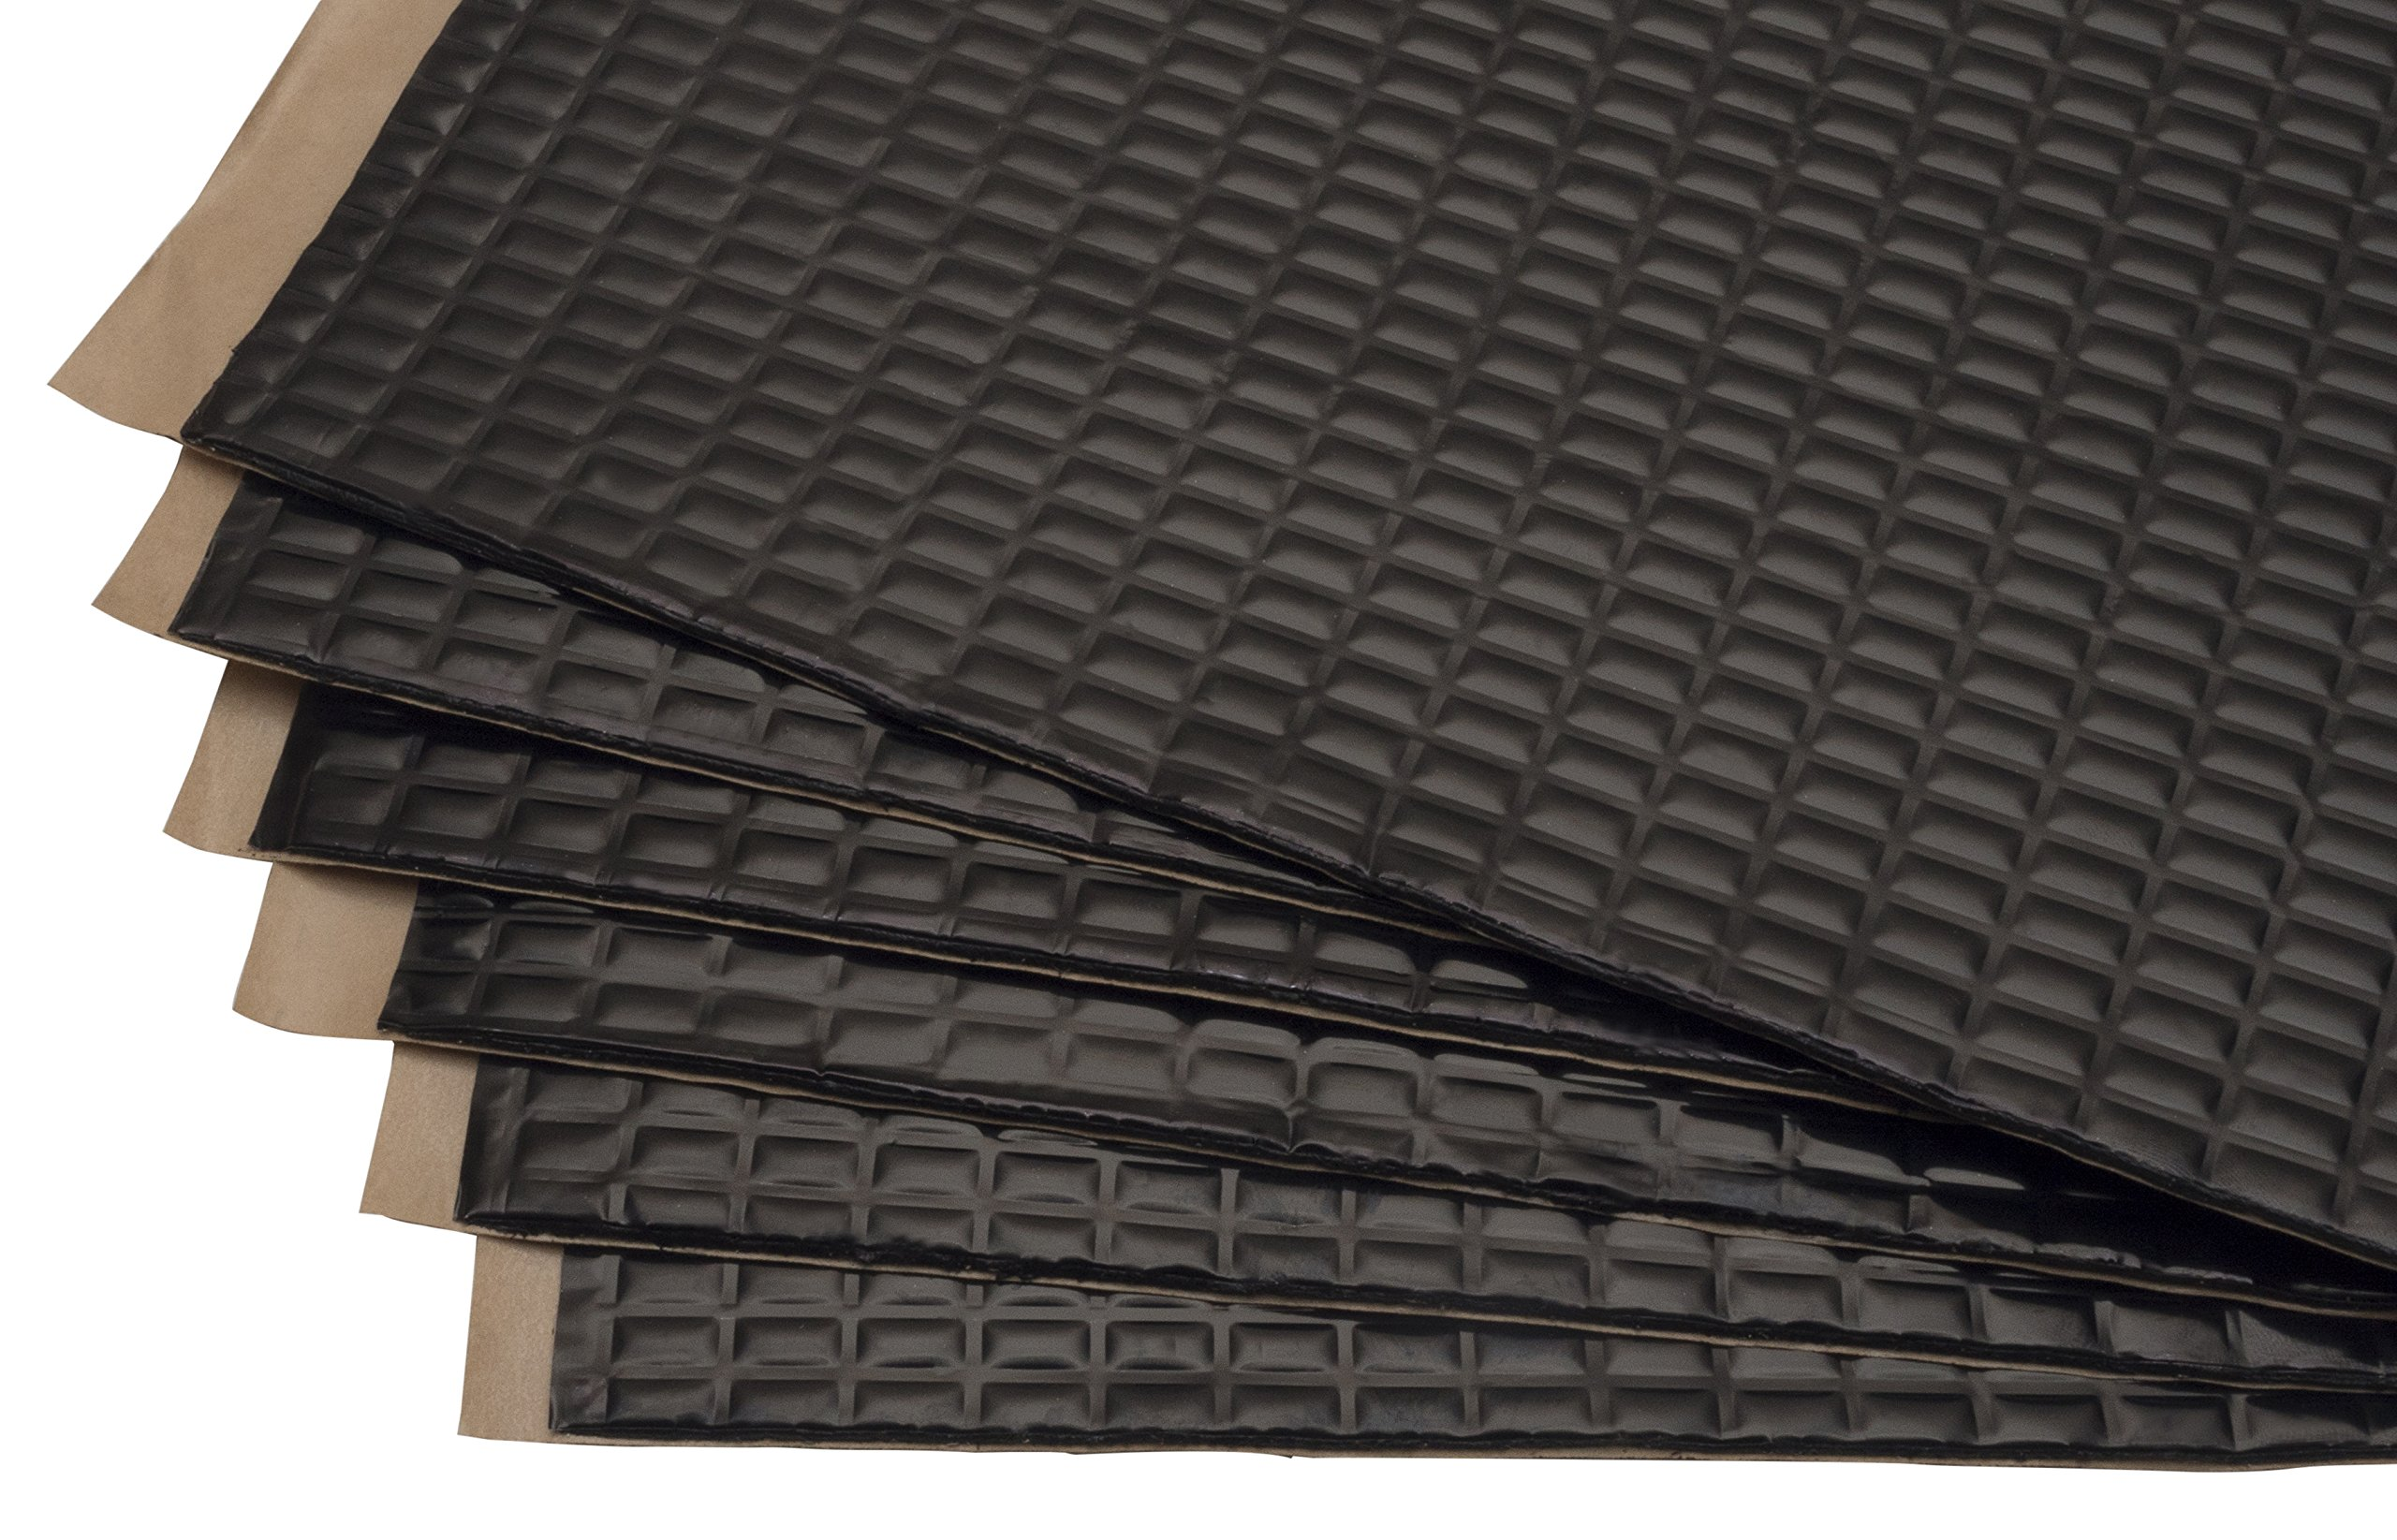 sound insulation auto sheets united greenock buy car us cell motorcycle mat foam deadening deadener closed for kingdom in material